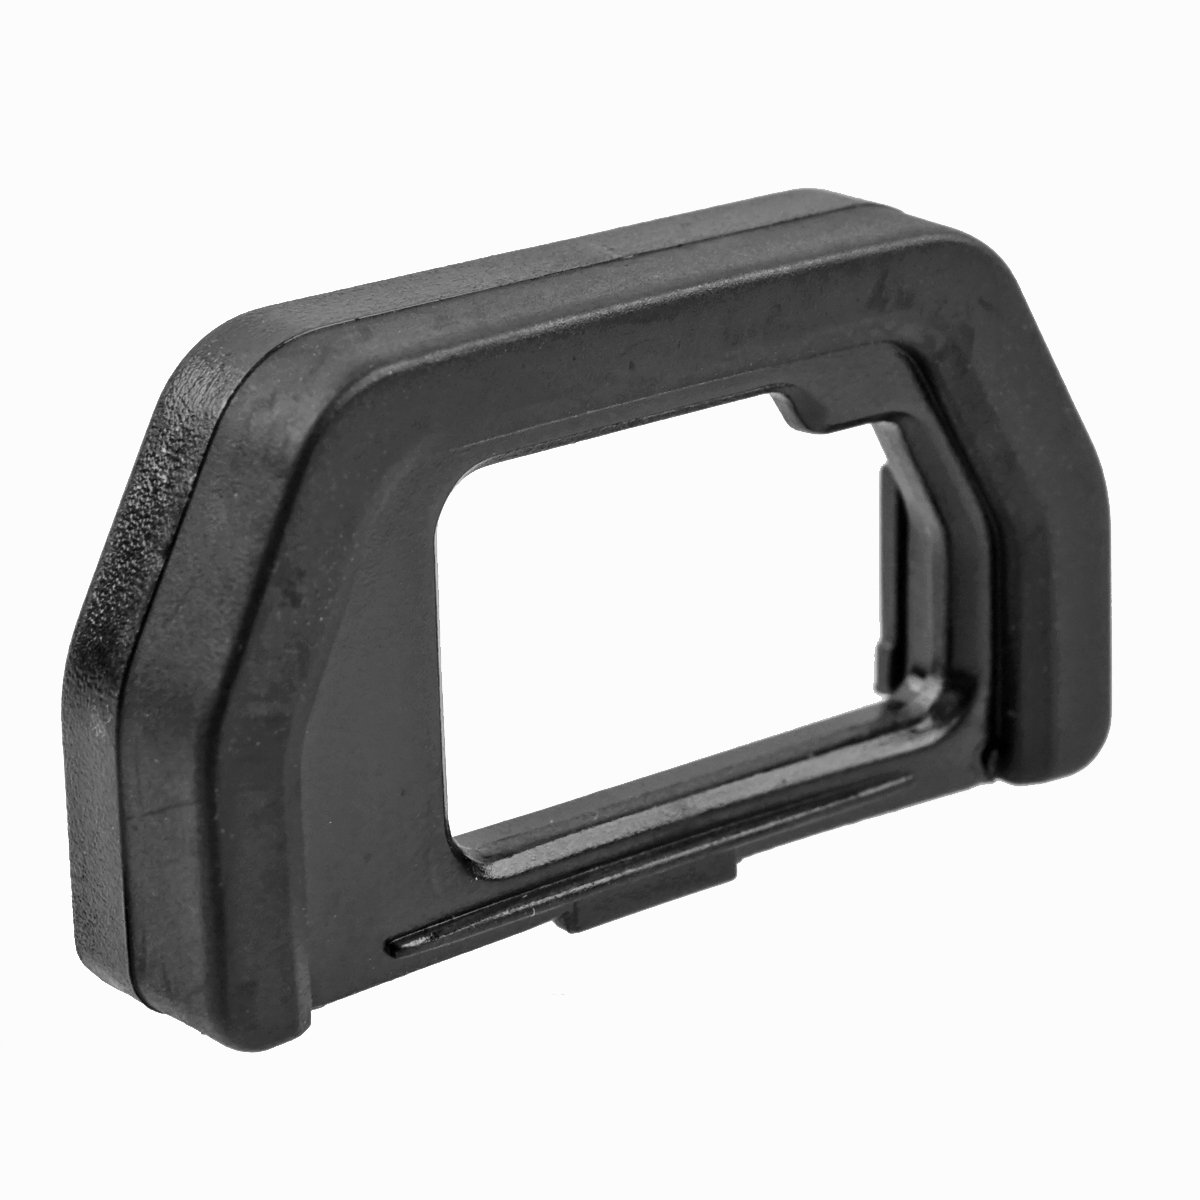 Foto&Tech Eyecup with Rubber Coated Plastic for Olympus OM-D E-M5 Mark II Camera Viewfinder Replaces Olympus EP-15 Eyecup EYECUP -EP15